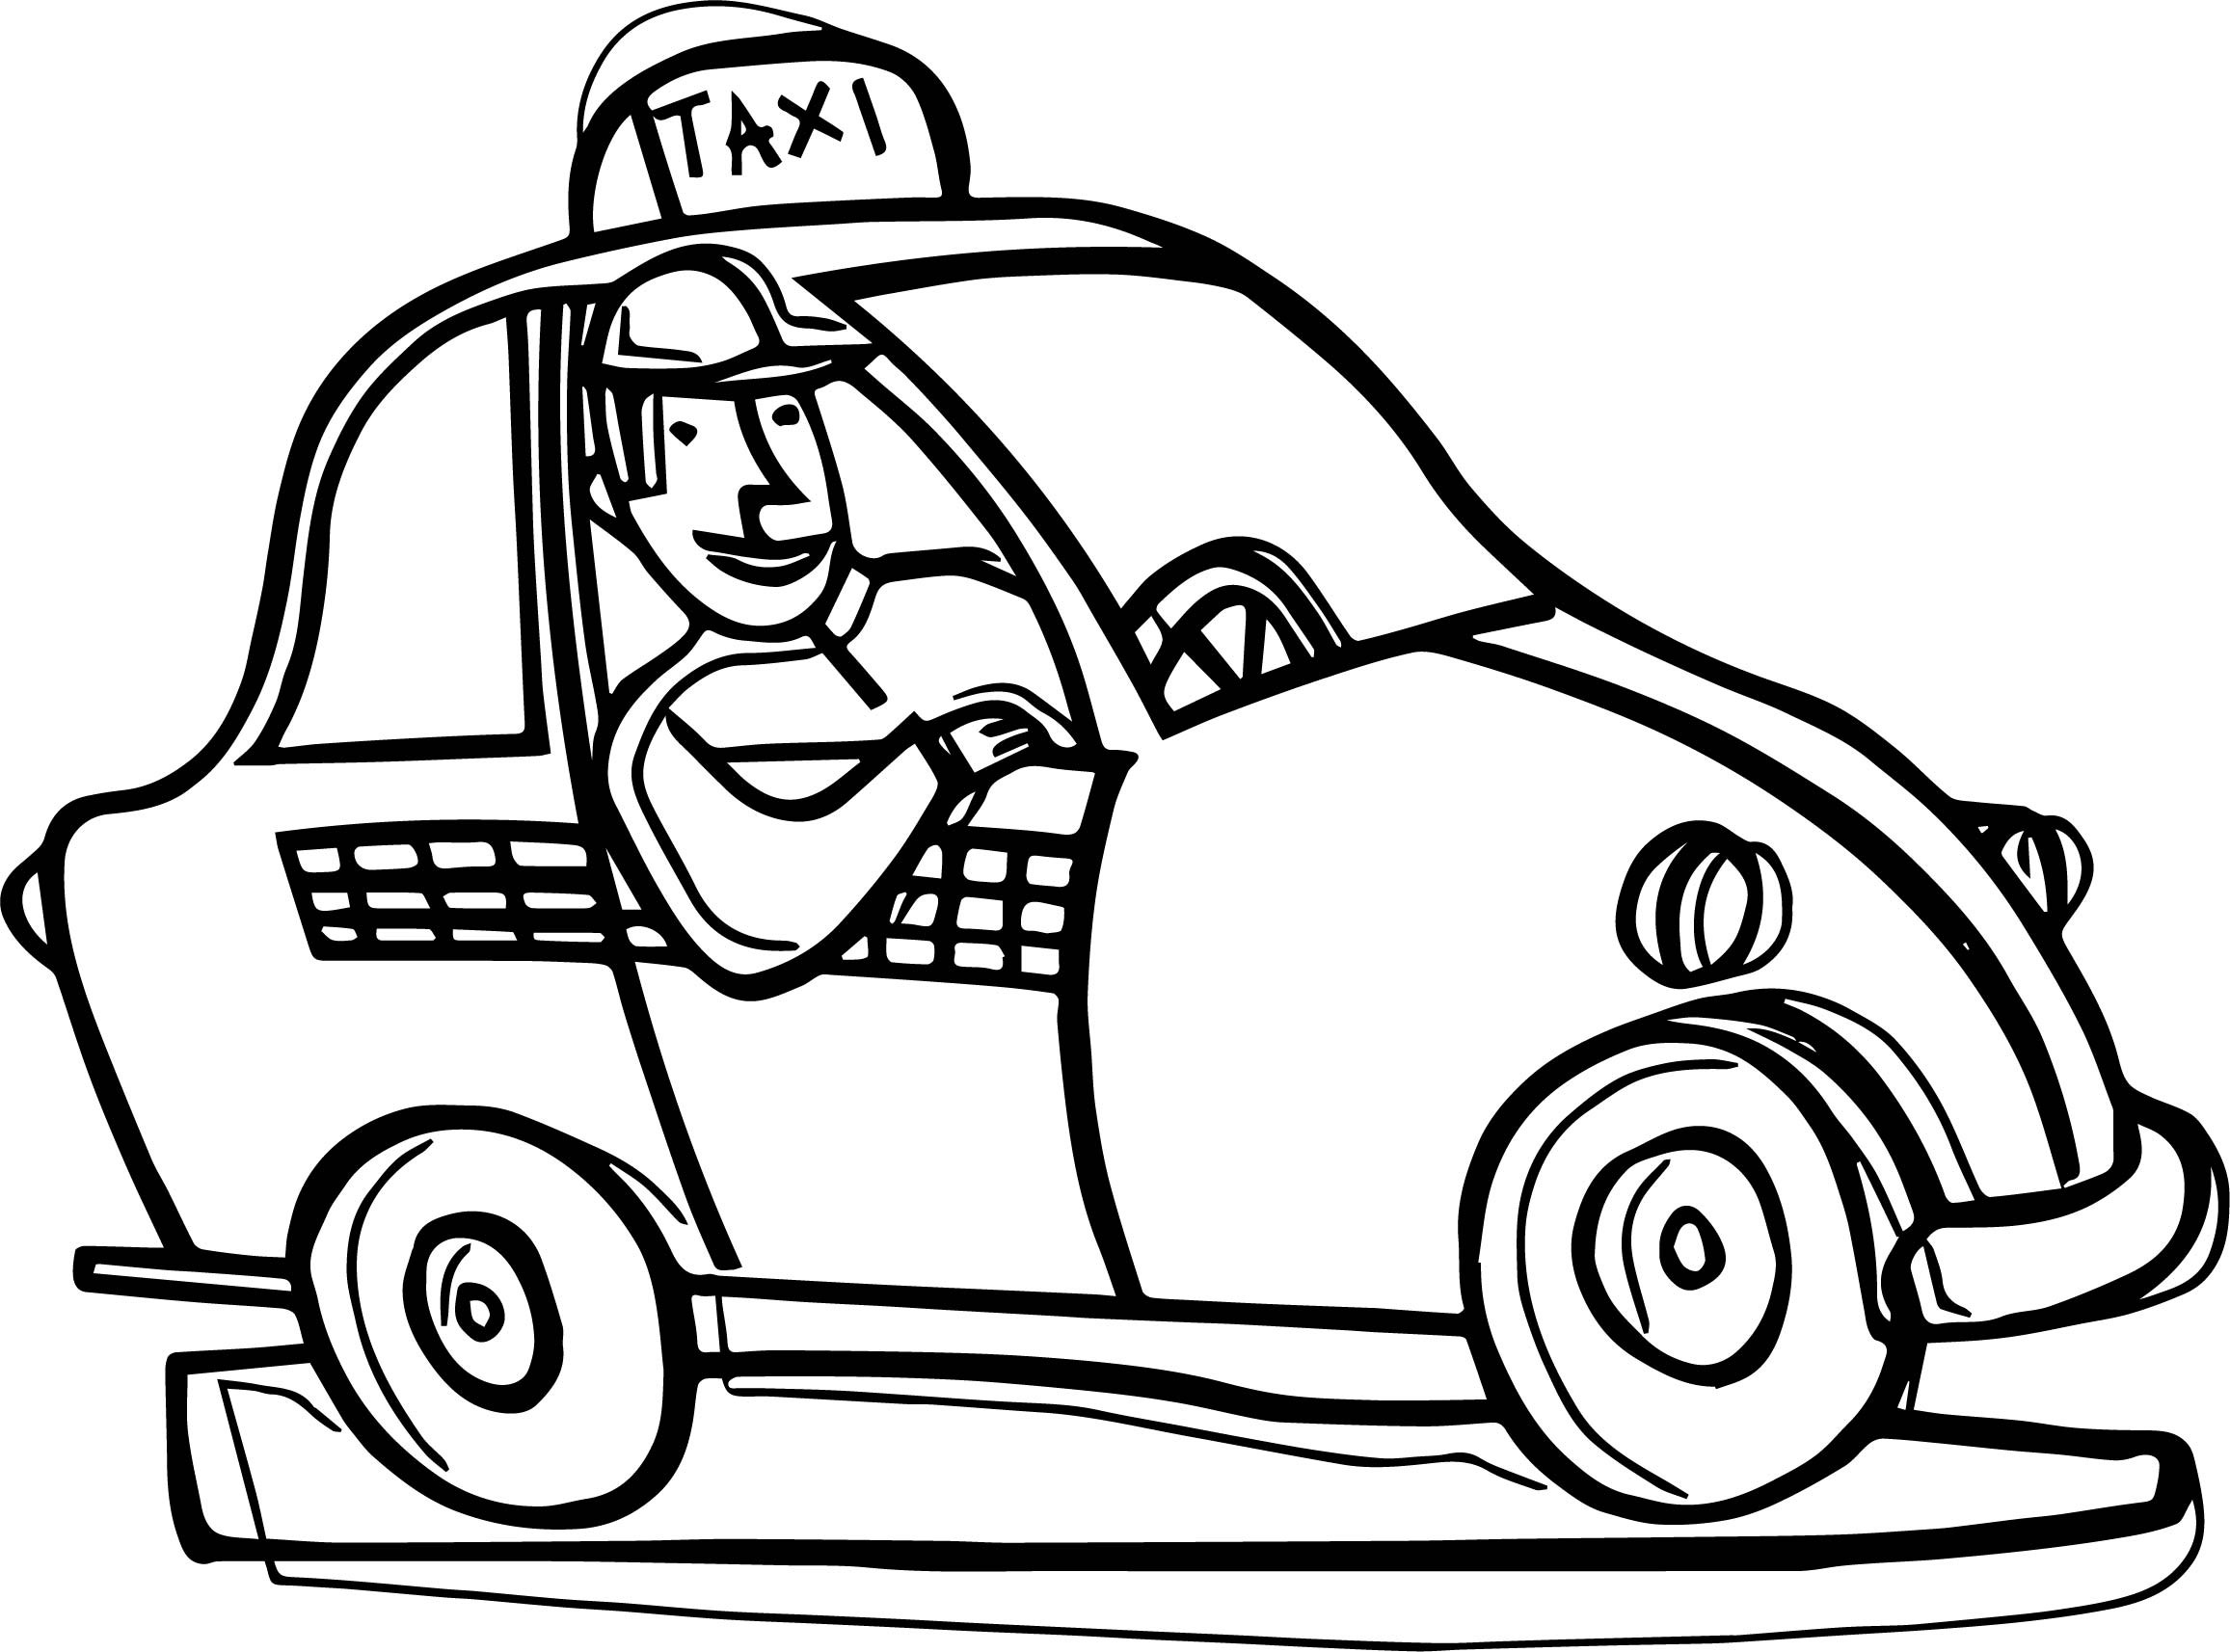 taxi colouring pages taxi coloring pages to download and print for free pages colouring taxi